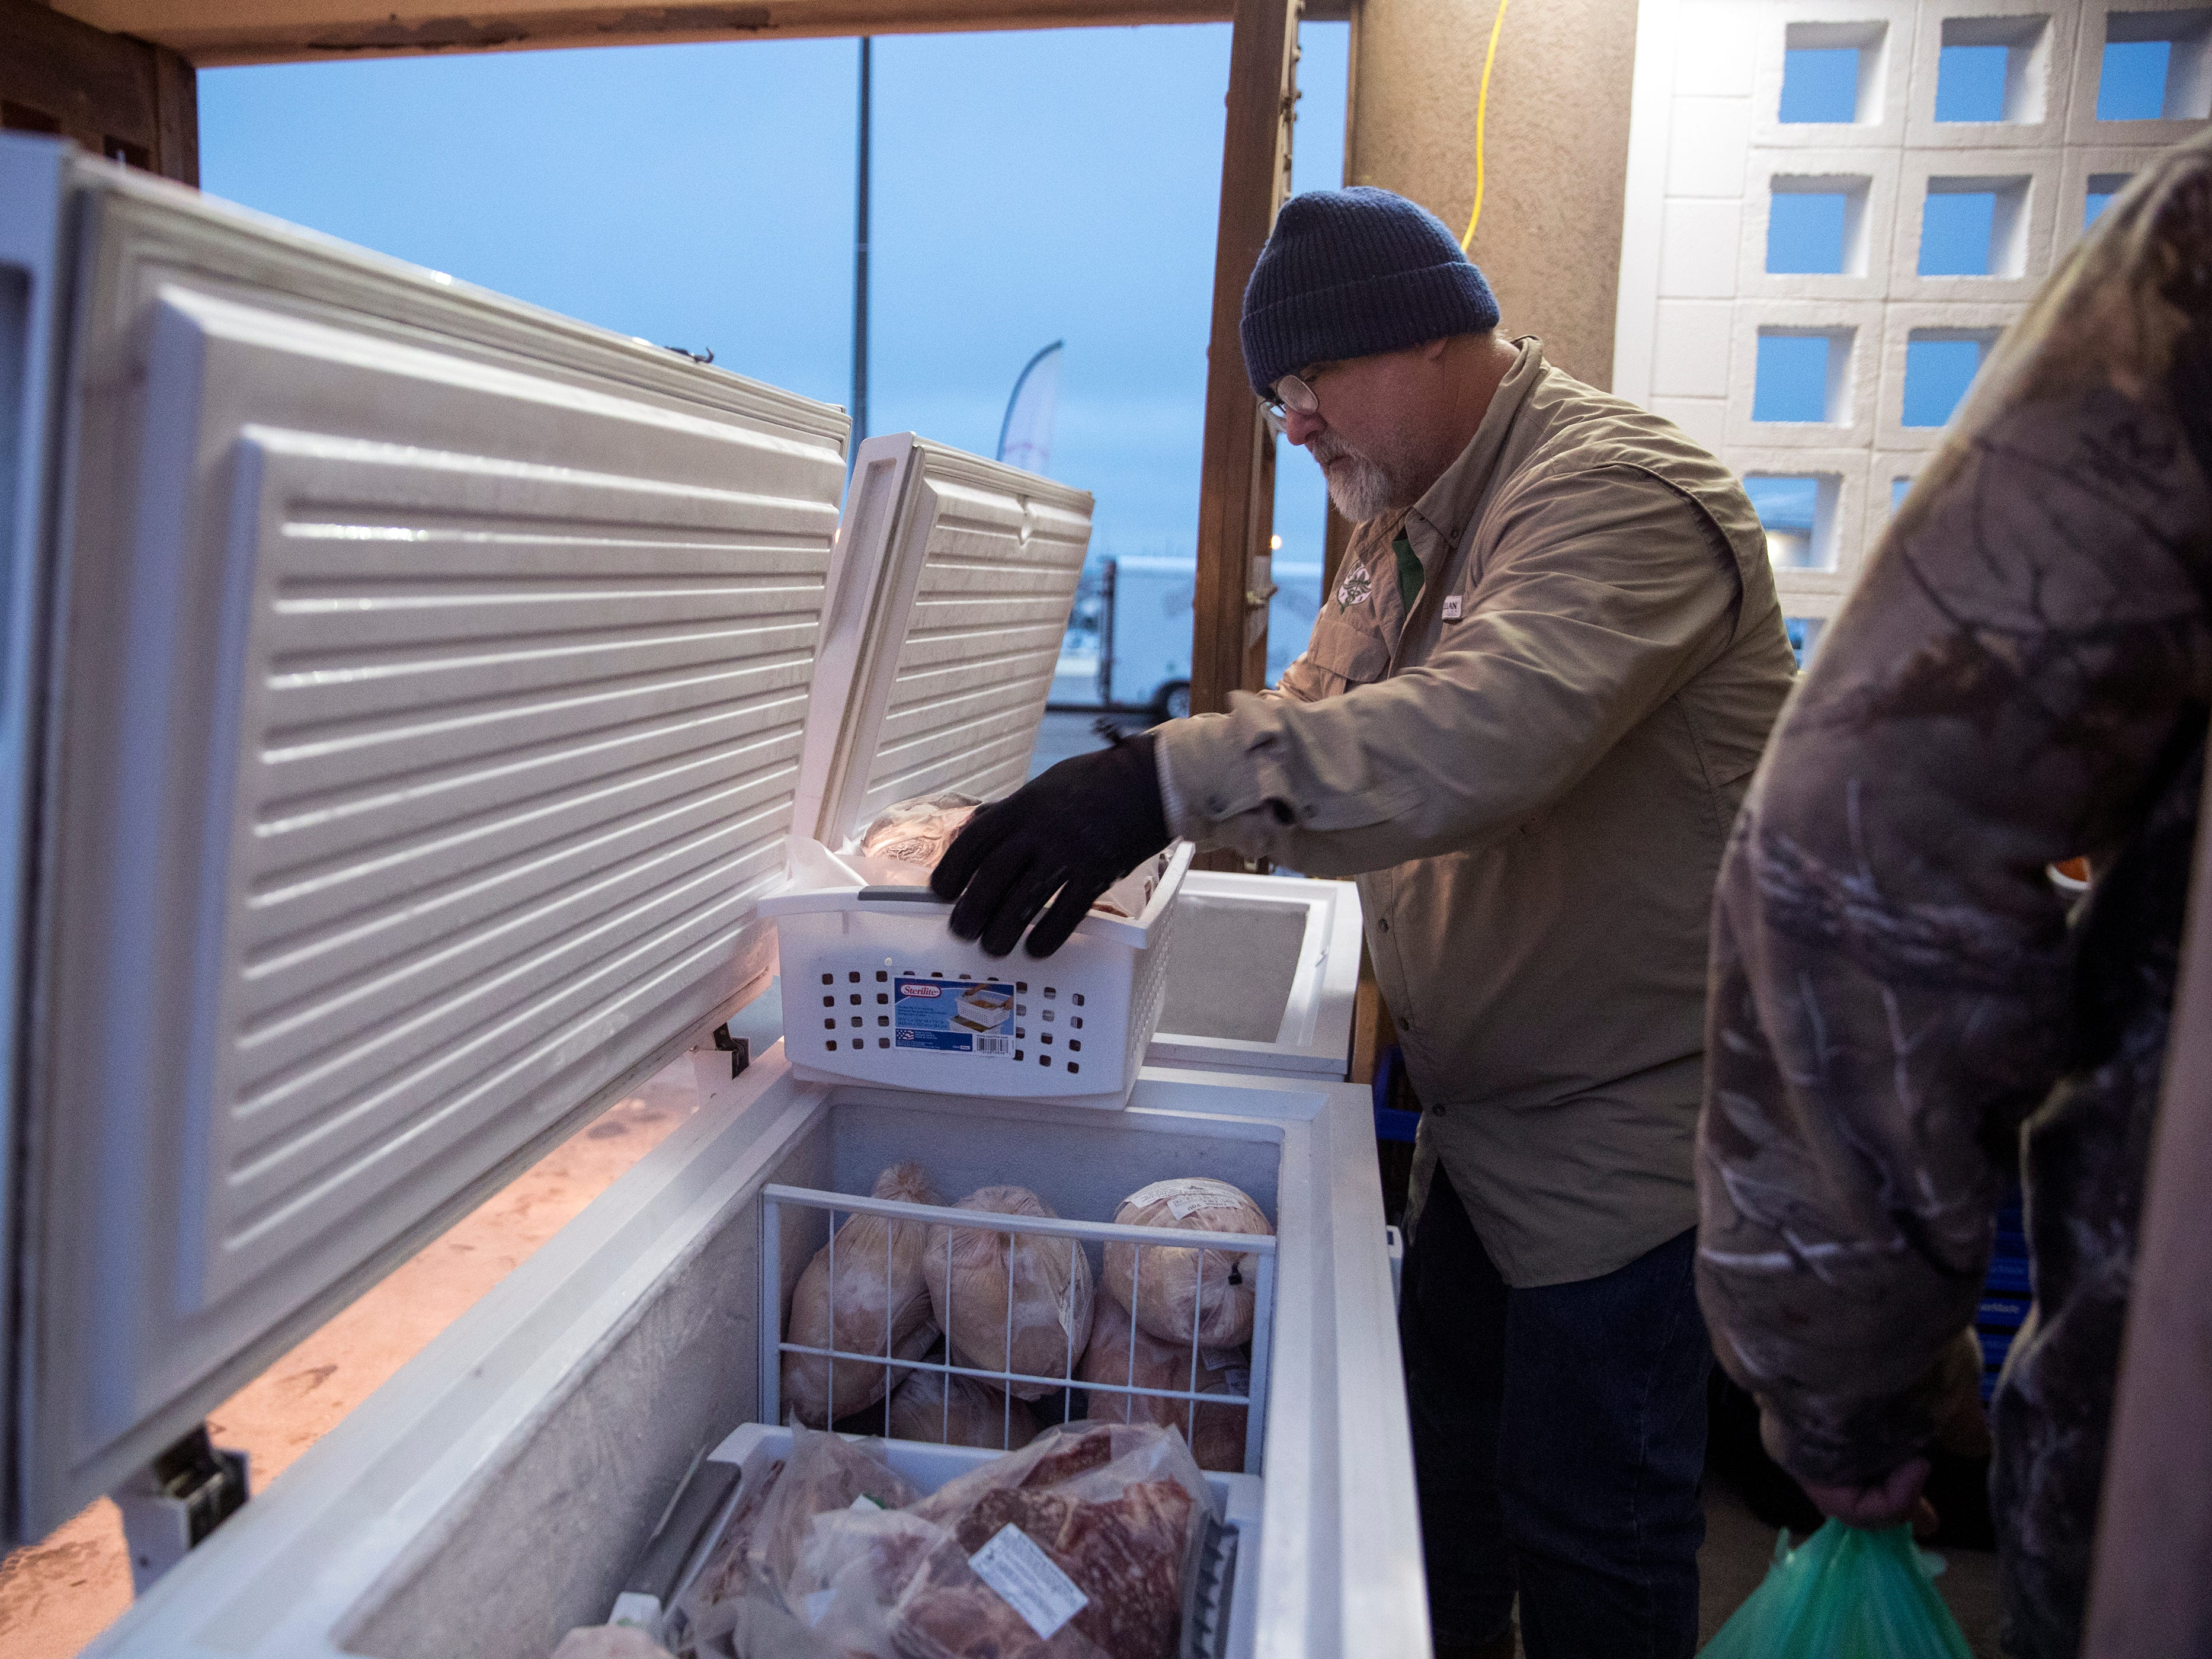 Wes Burns (left), owner of Future Focus Farms, pulls meat out of a freezer for a customer at the Corpus Christi Downtown Farmers Market at the first market of the year on January 2, 2019. Farmers markets help create community and producers get to know the consumers that shop with them, said Aislynn Campbell, founder of the market. It also enables the farmer, or business owner to meet new customers and grow their business.